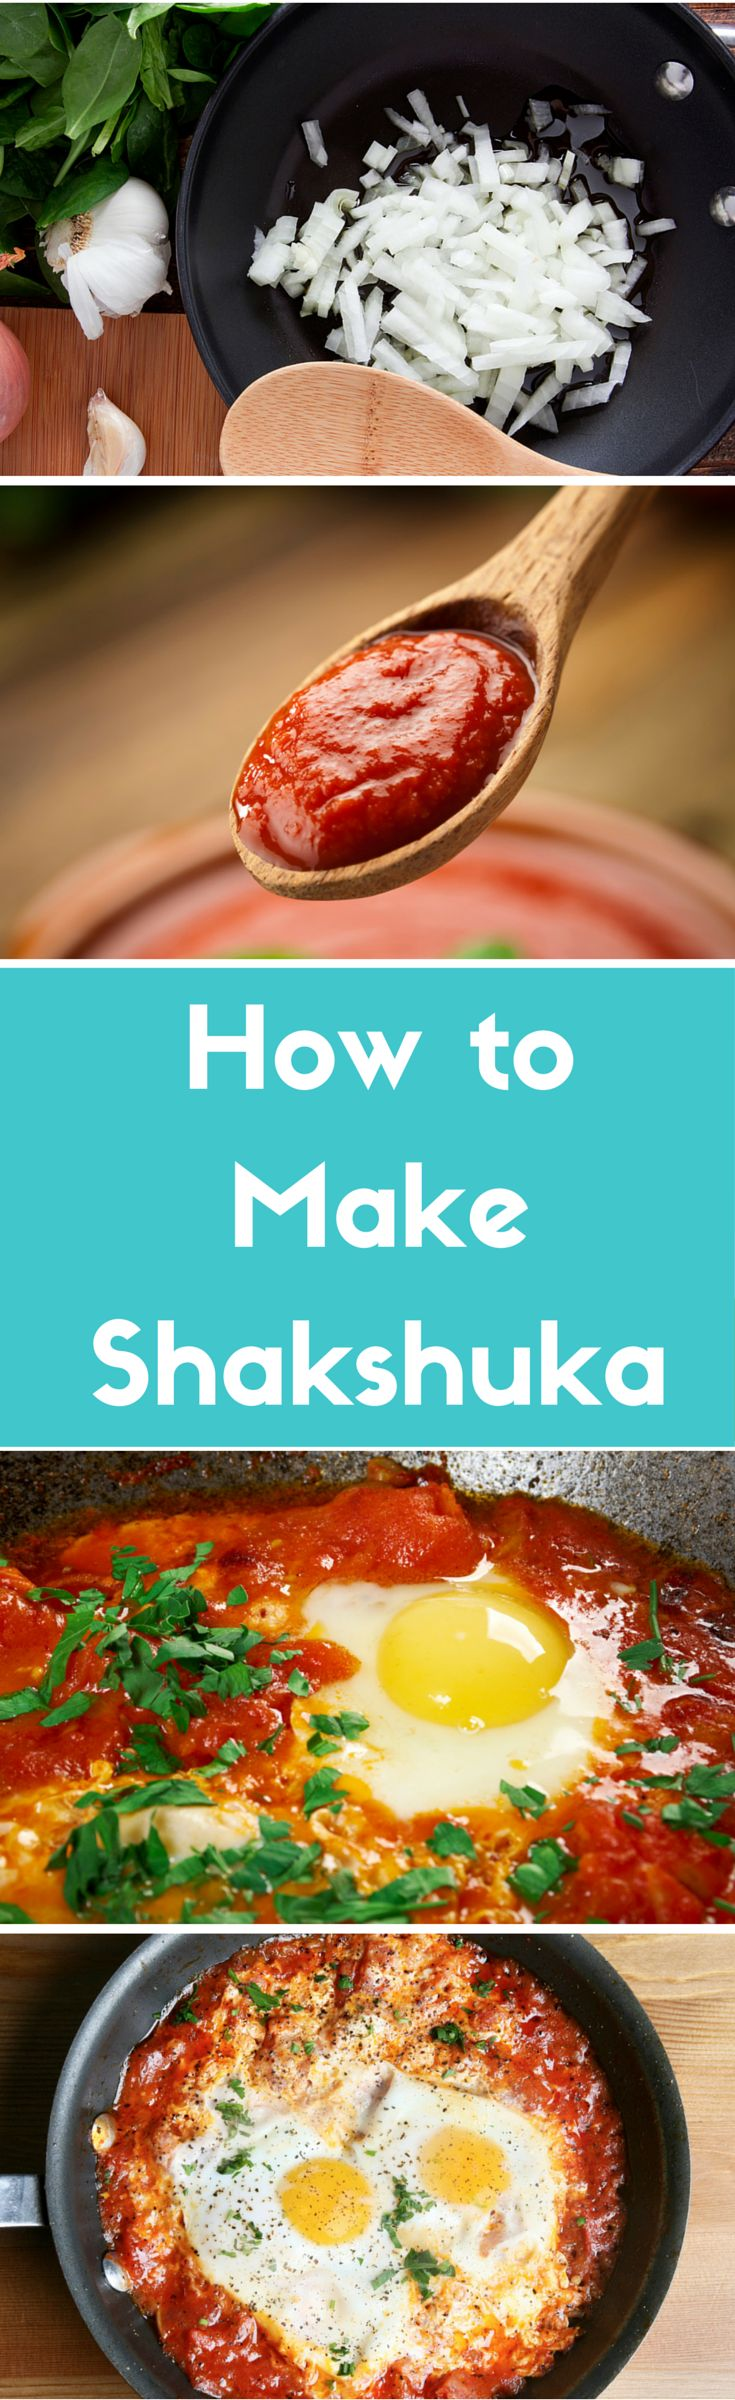 133 best Shabbat Recipes images on Pinterest | Jewish food, Kitchens ...